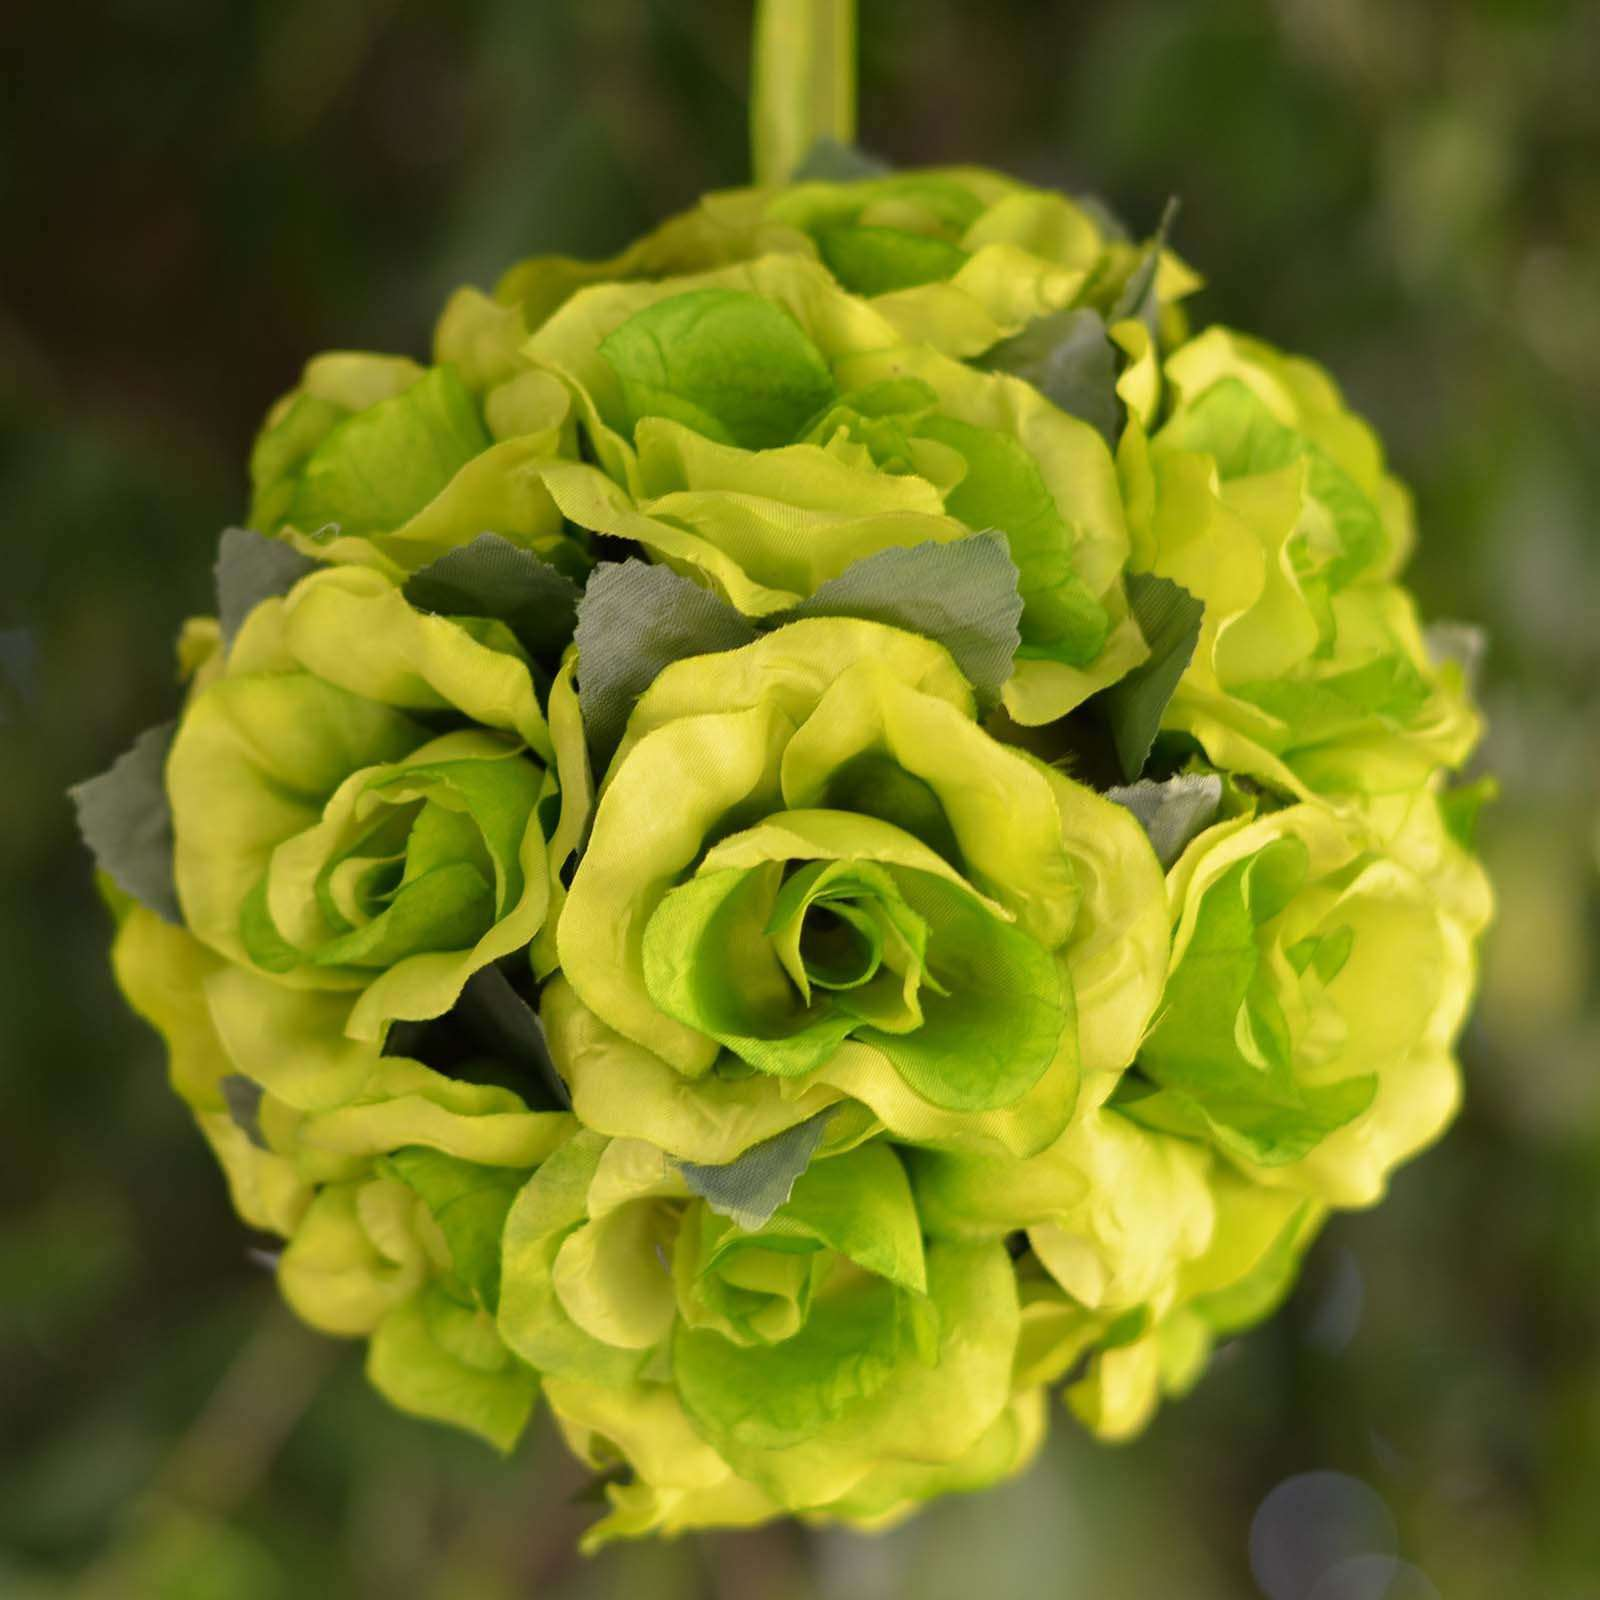 Rose Pomander Kissing Flower Balls Bouquet Décor - Lime ...